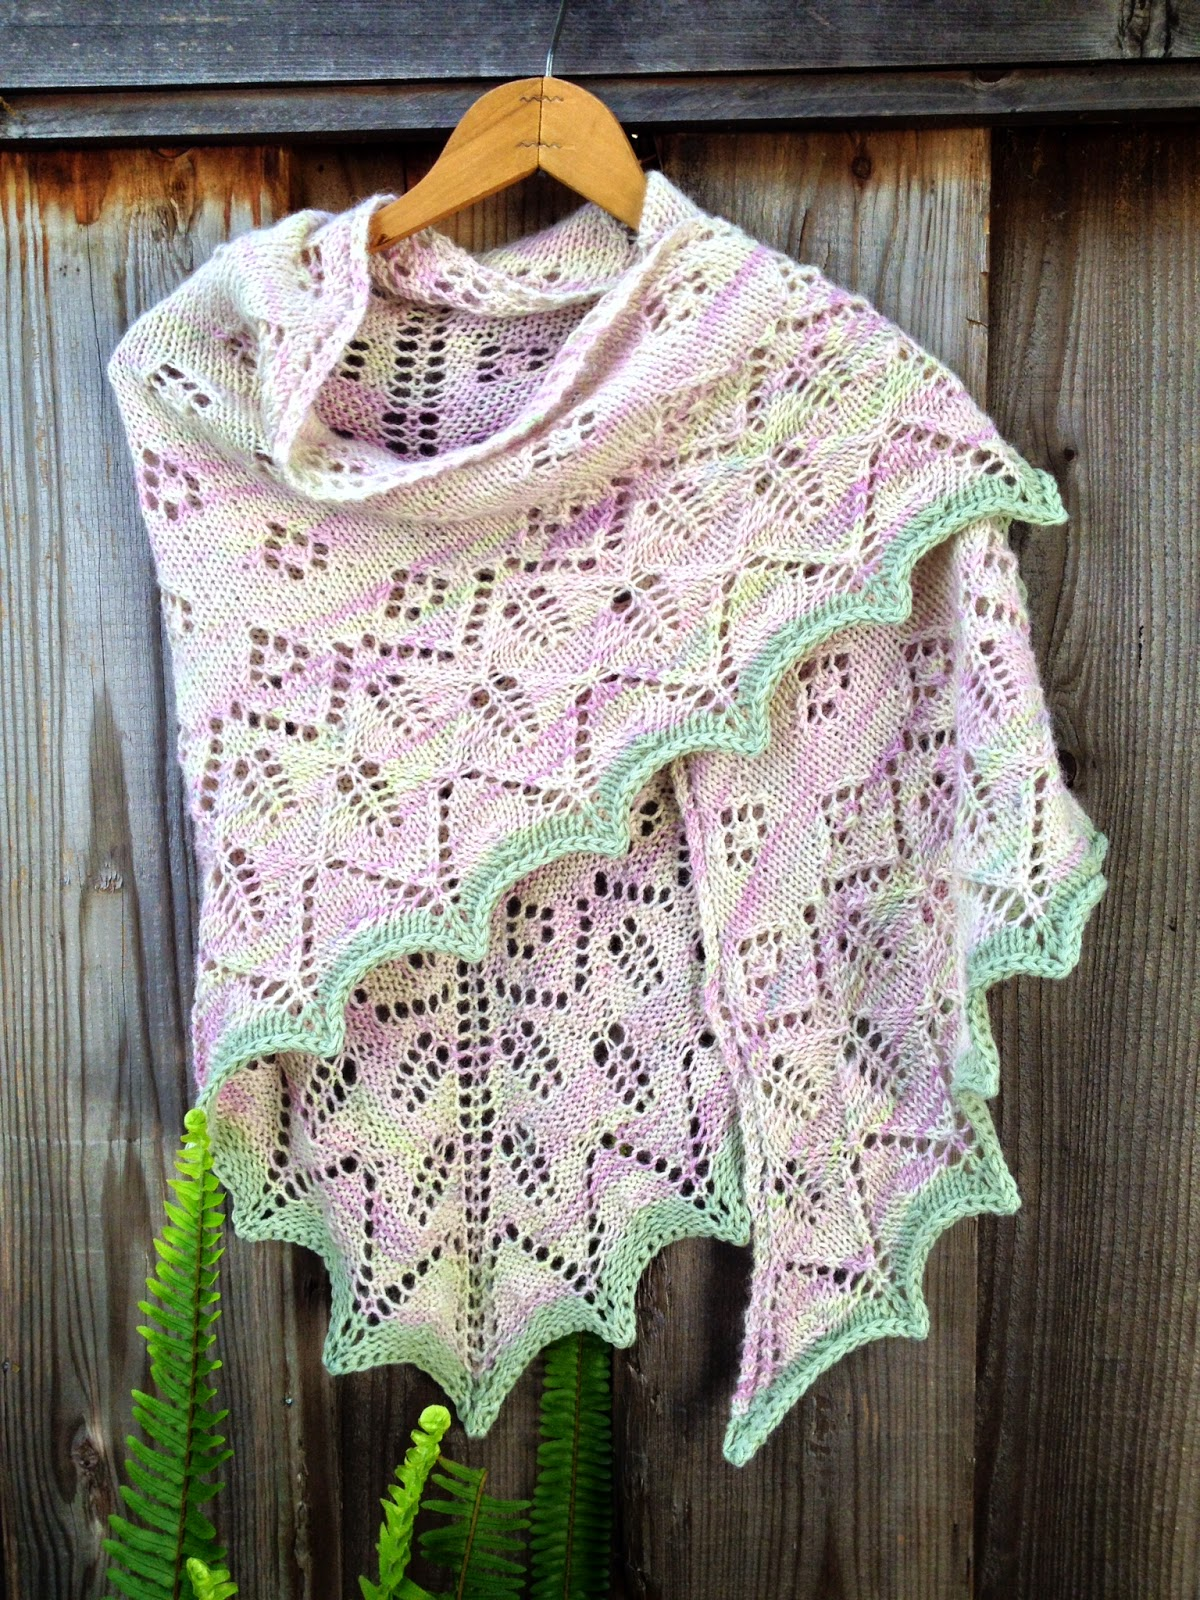 Reading A Knitting Pattern : Knitted Candy: Made Time to Learn How to Read Knitting Pattern Charts - Finis...